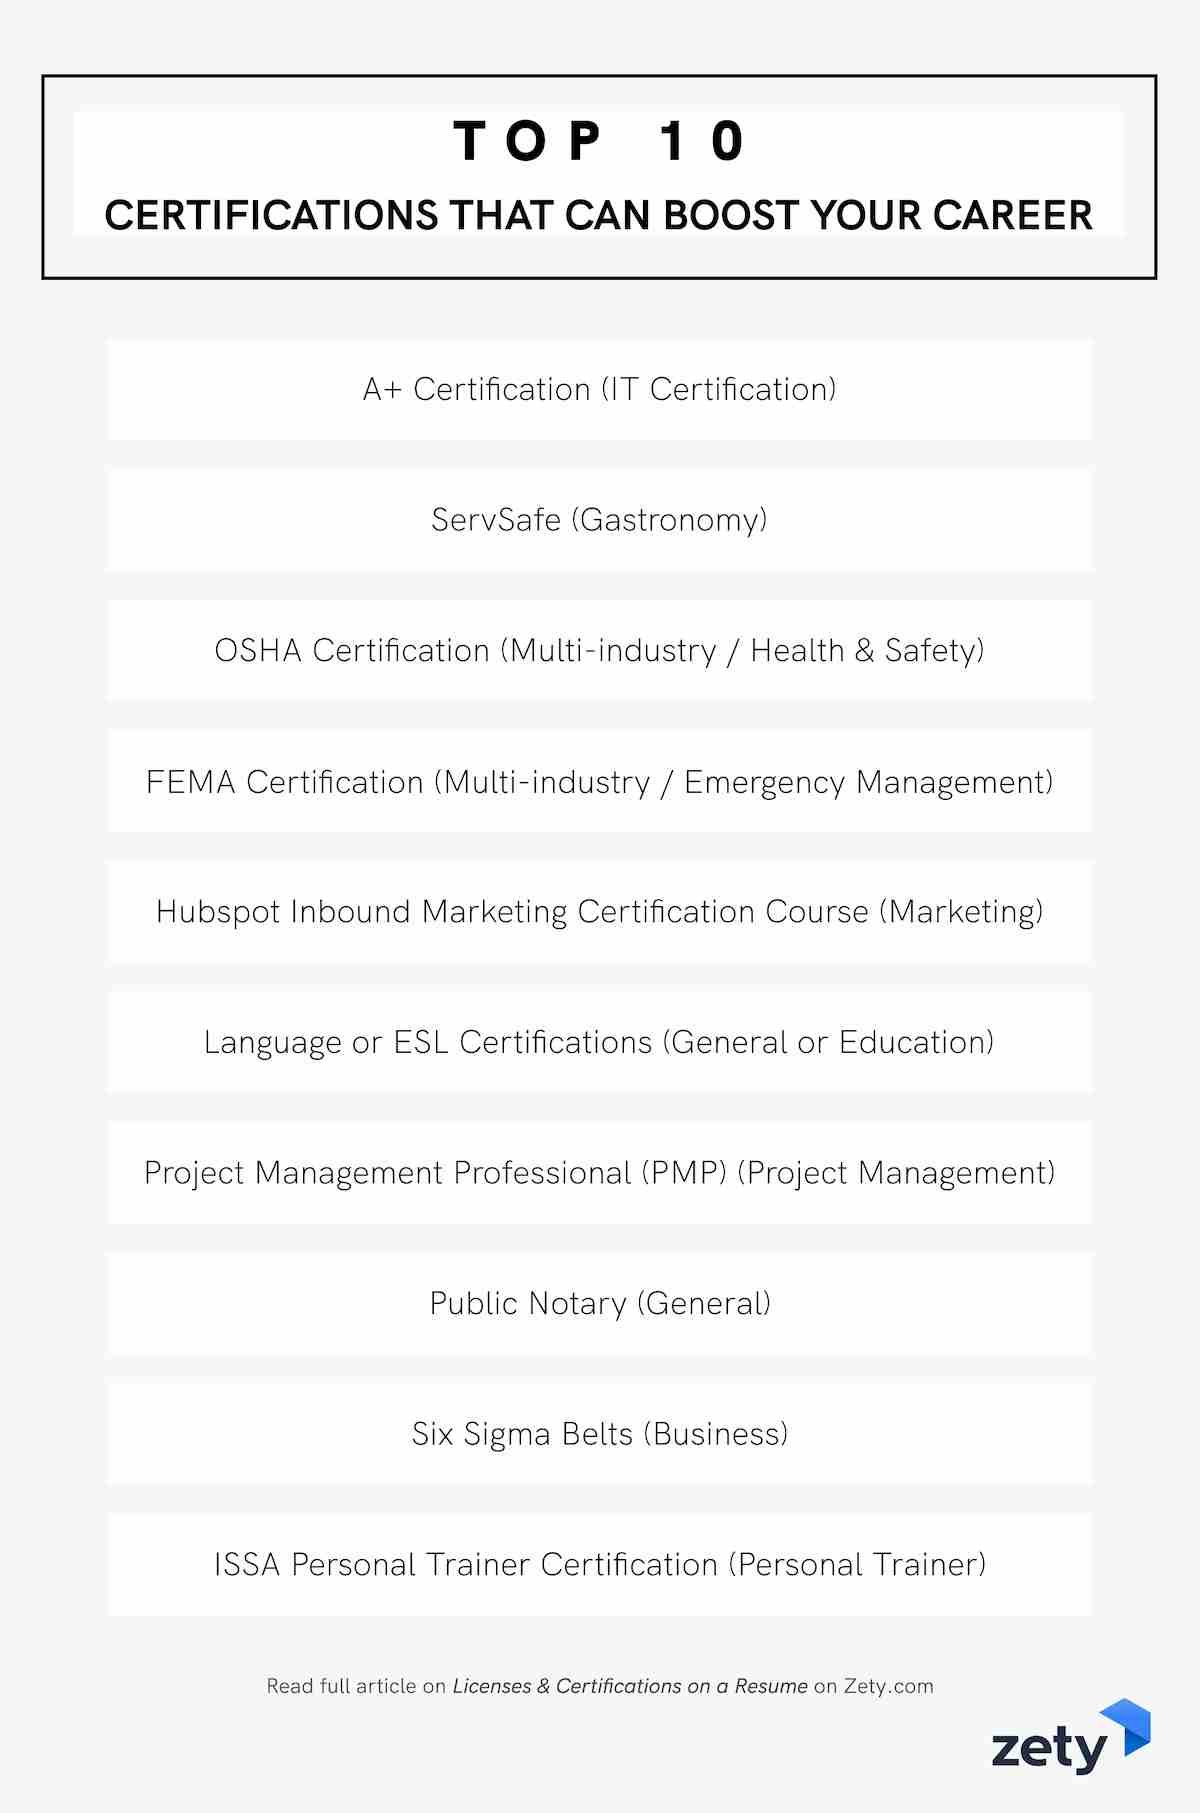 List of useful certifications for a resume that can boost your career